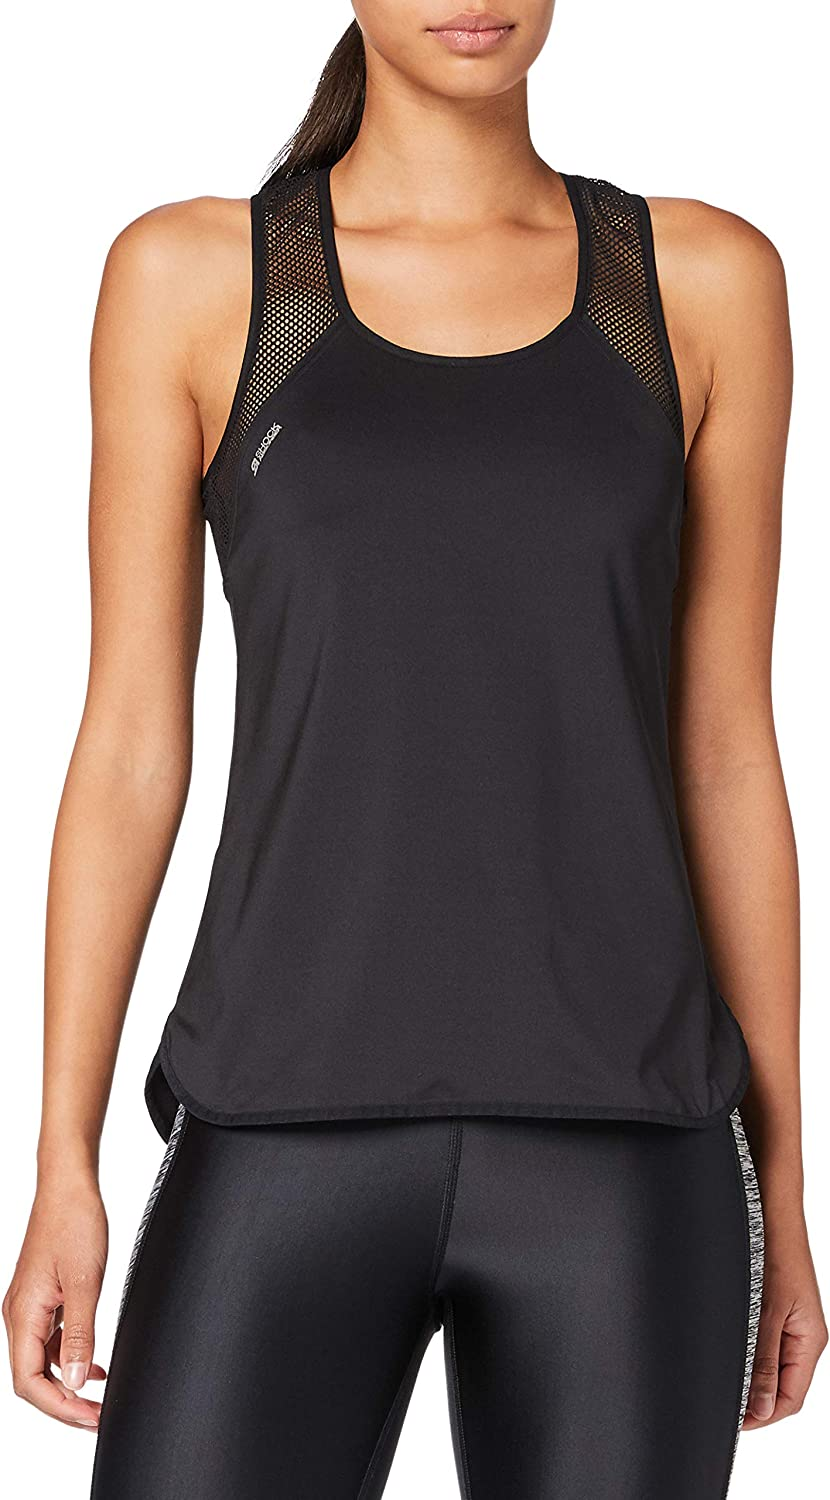 Shock Absorber Women's High Active Popular product Breathable Tank Many popular brands S0 Fitted Top